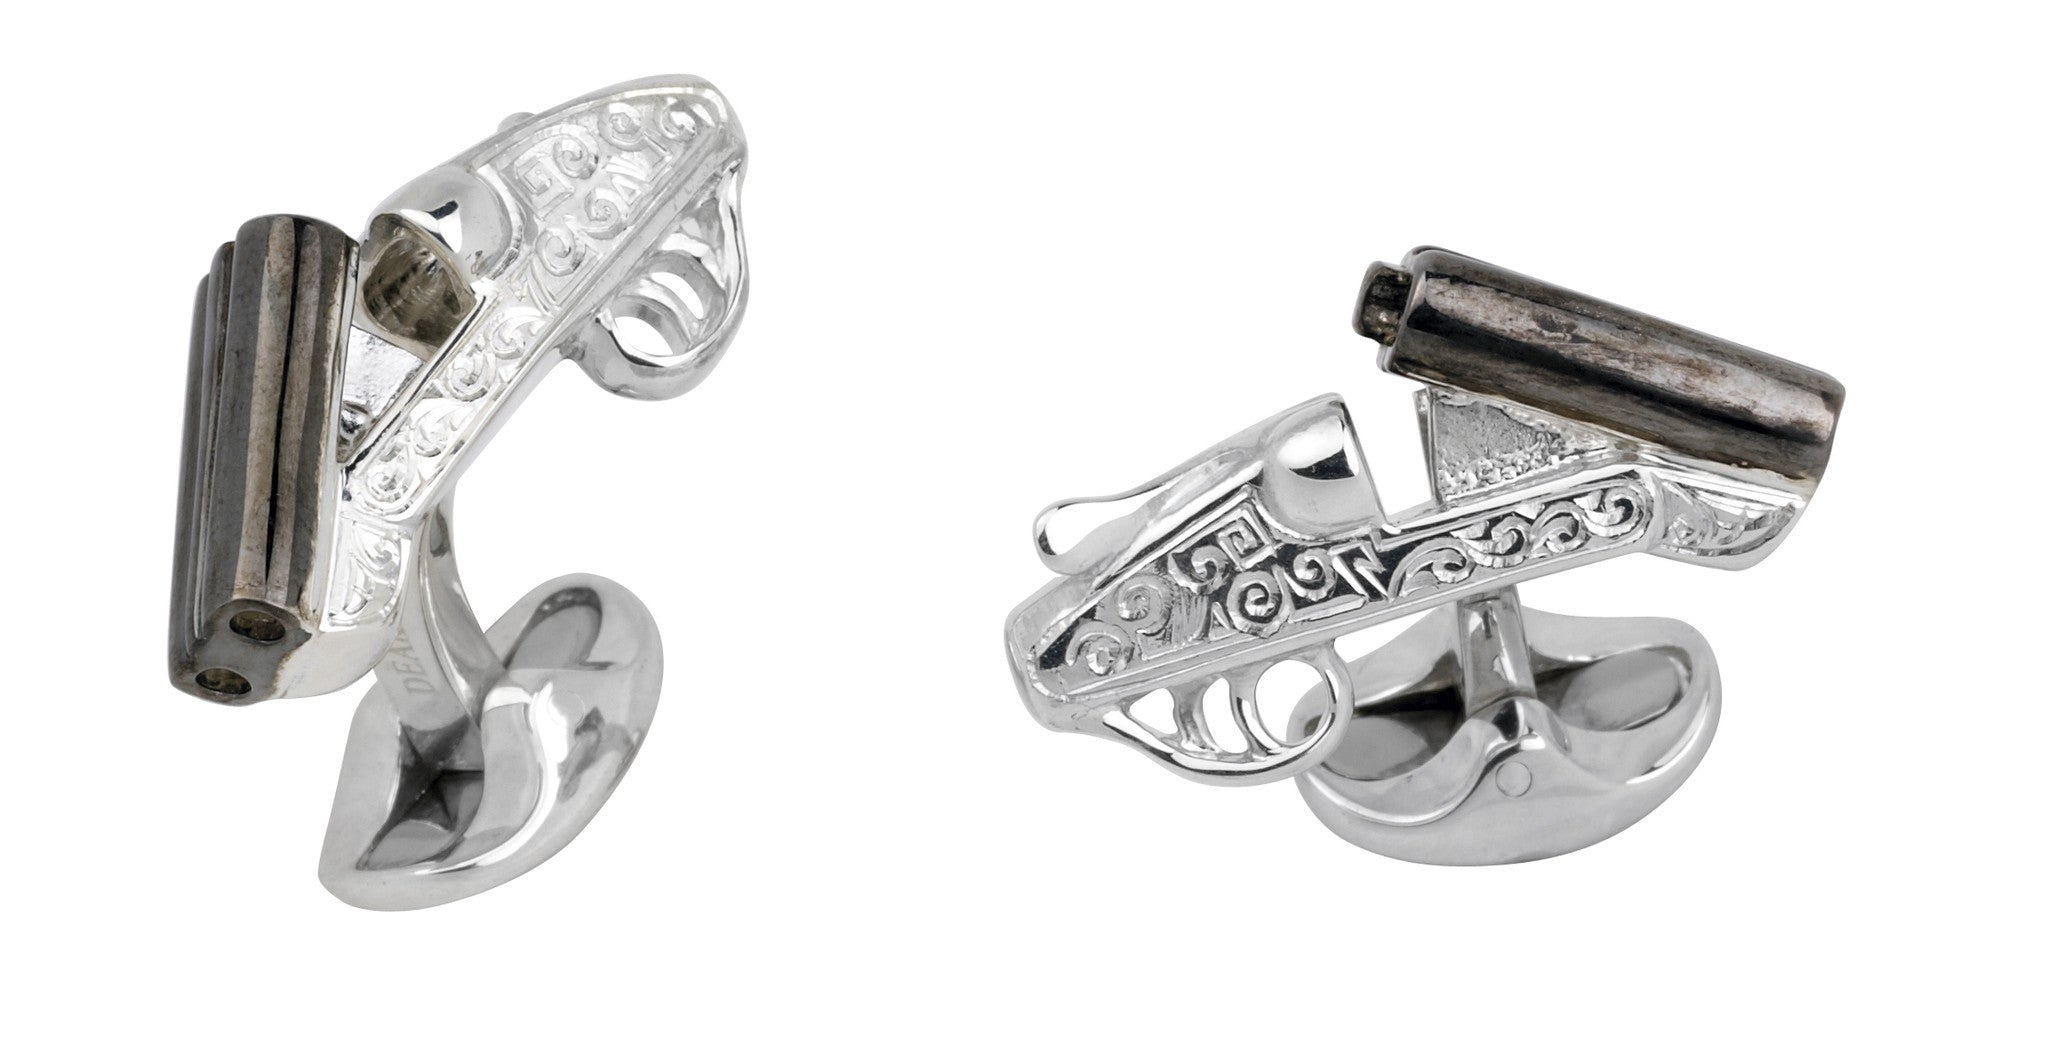 Engraved Cocked Shotgun Cufflinks - CRED Jewellery - Fairtrade Jewellery